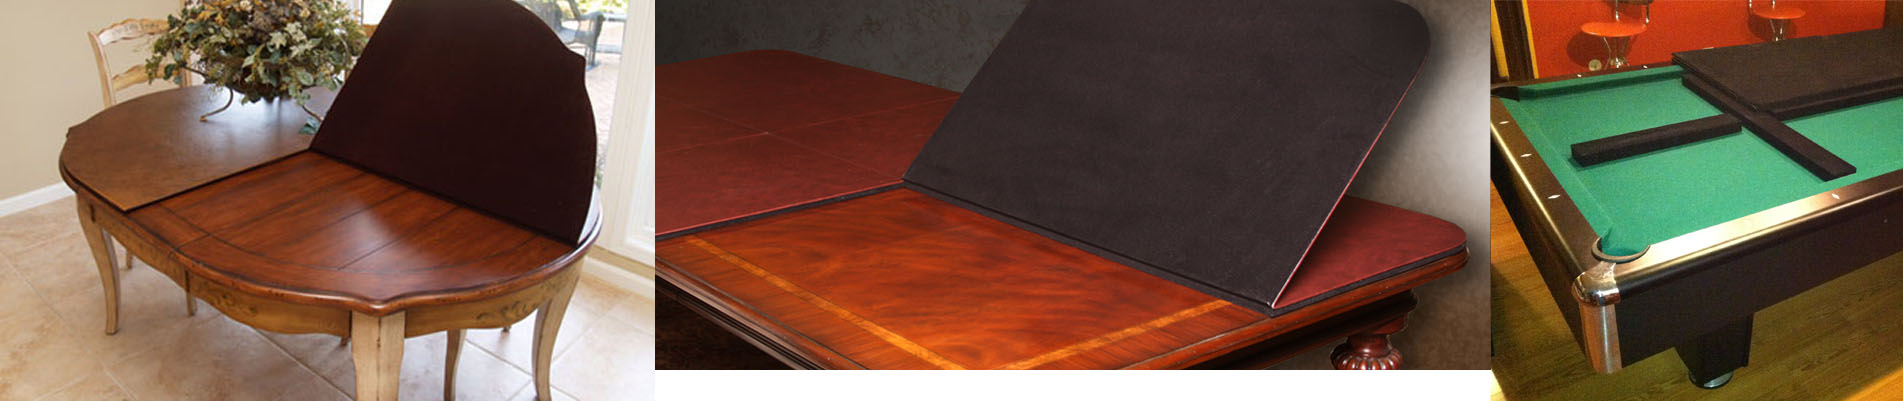 Table Pads Dining Table Pads Piano Pads Affordabletablepads Com